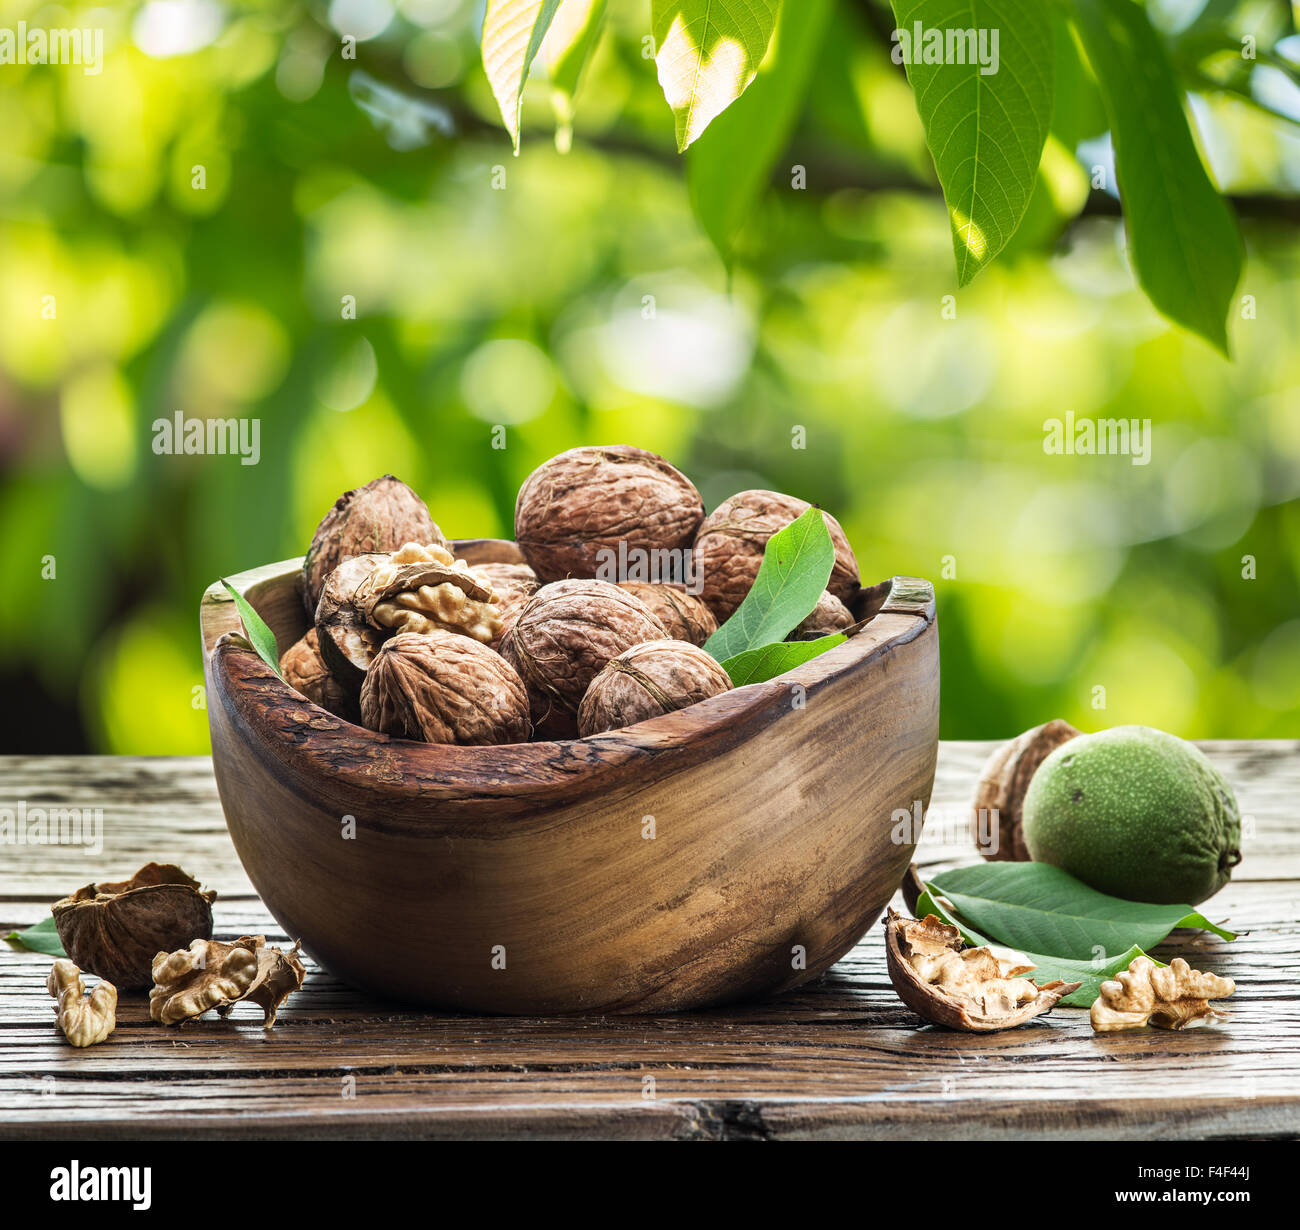 Walnuts in the wooden bowl on the table. The bright nature background. - Stock Image